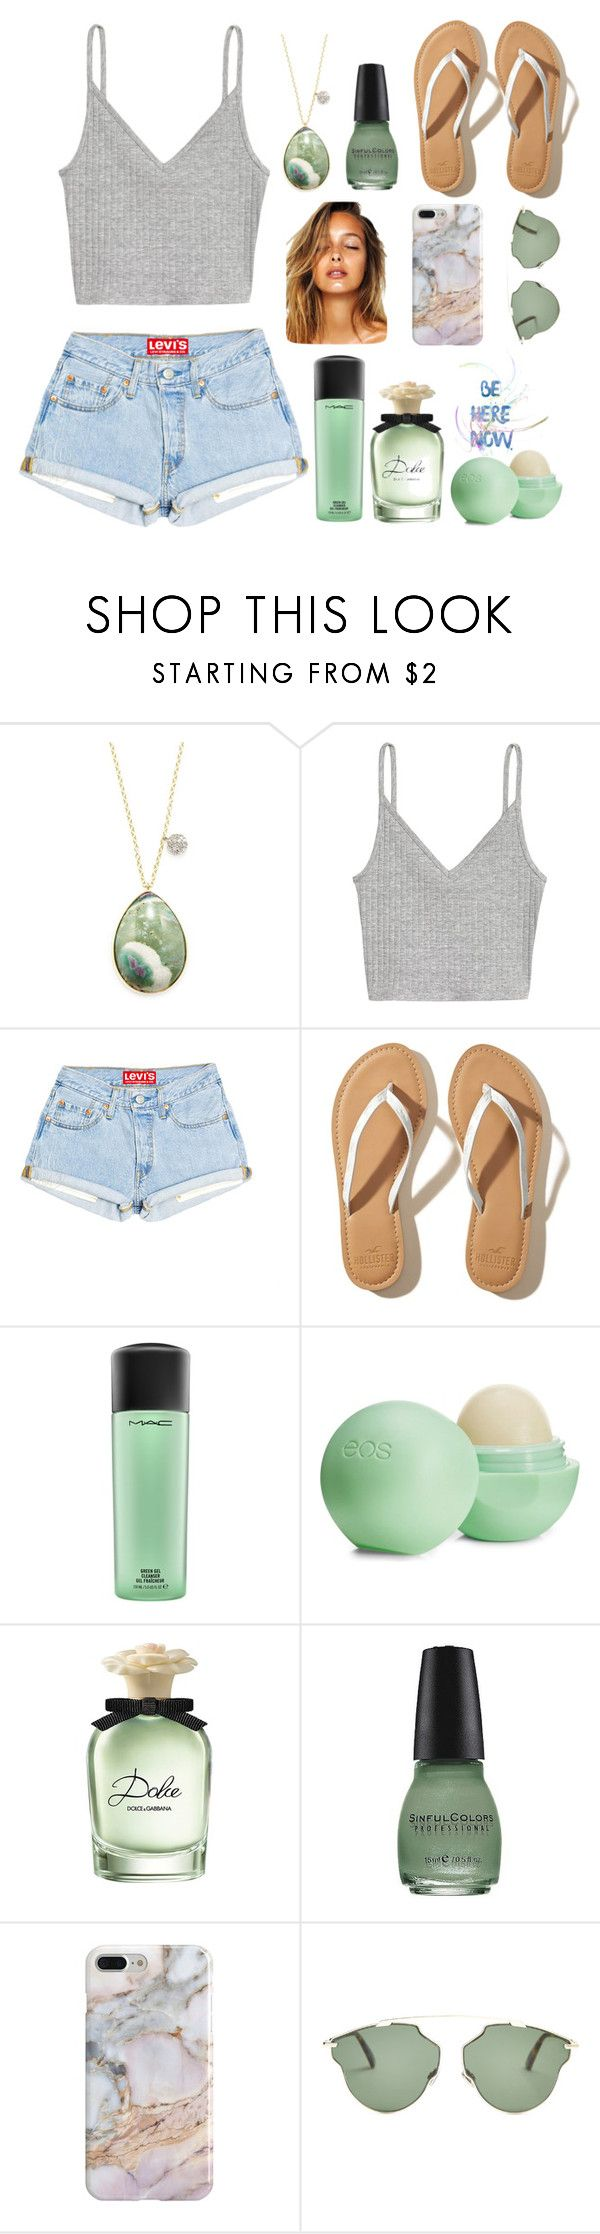 """""""My style"""" by keren300 ❤ liked on Polyvore featuring Meira T, Hollister Co., MAC Cosmetics, Eos, Dolce&Gabbana, SinfulColors, Recover and Christian Dior"""